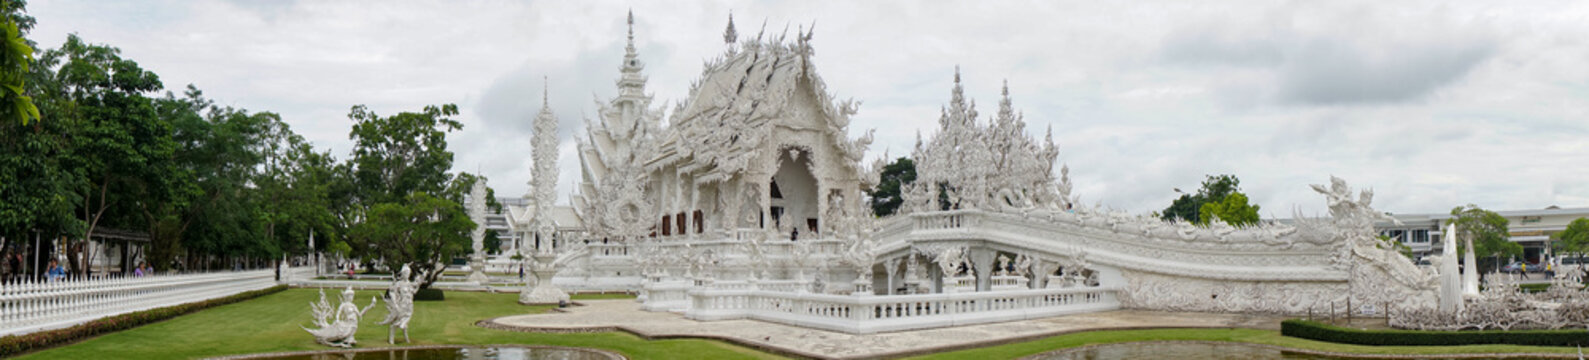 Chiang Rai, THAILAND - July 20, 2021: famous white temple, panoramic photo during the day without people, snow-white structure, greenery, pond